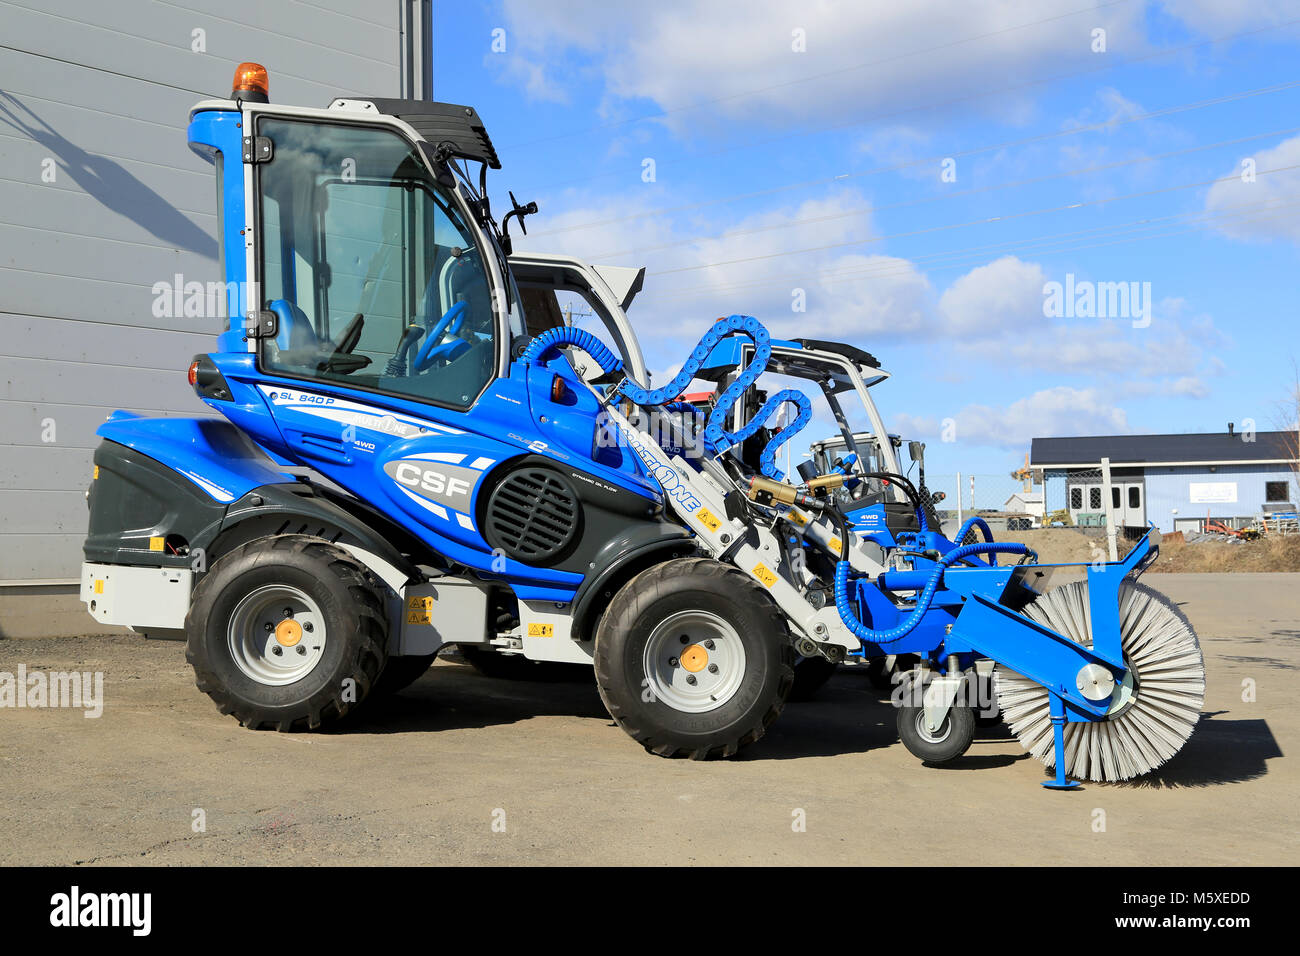 TURKU, FINLAND - MARCH 21, 2015: Multione compact miniloader with a brush attachment outside on a yard. Multione - Stock Image